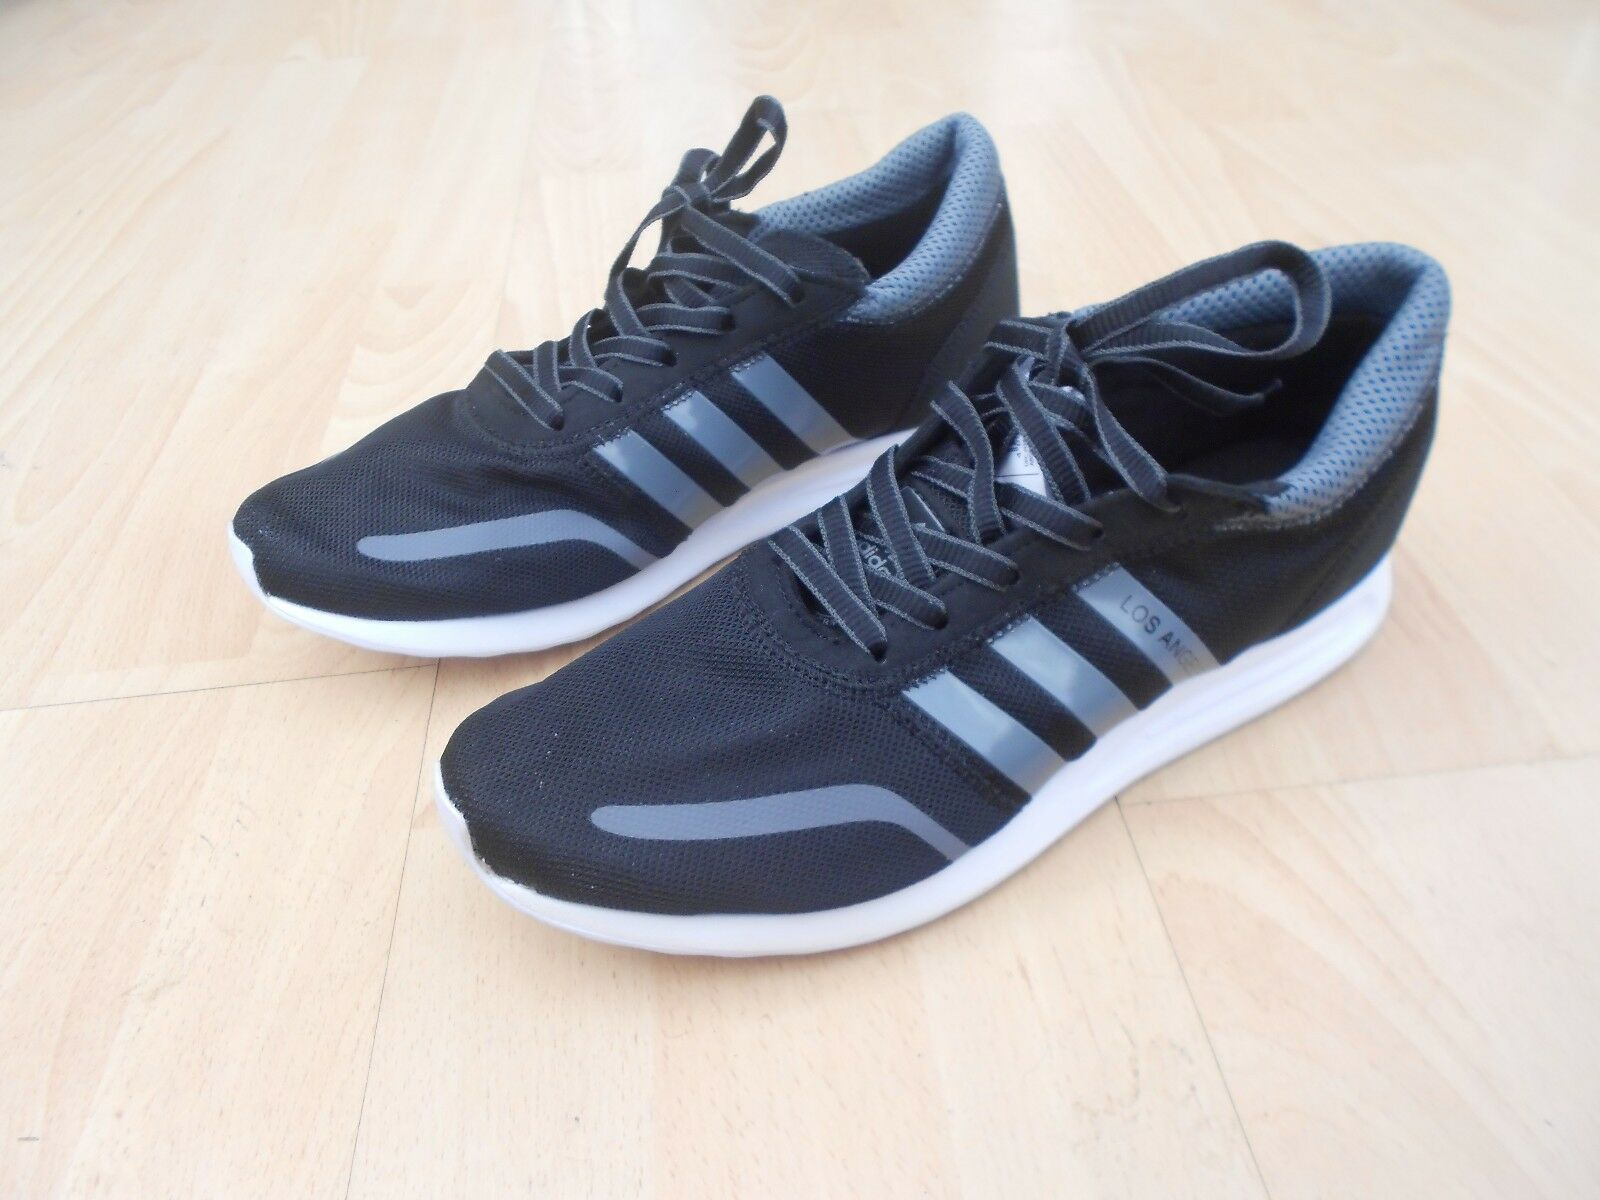 ADIDAS LOS ANGELES TRAINERS UK SIZE 11 -  IN GOOD CONDITION